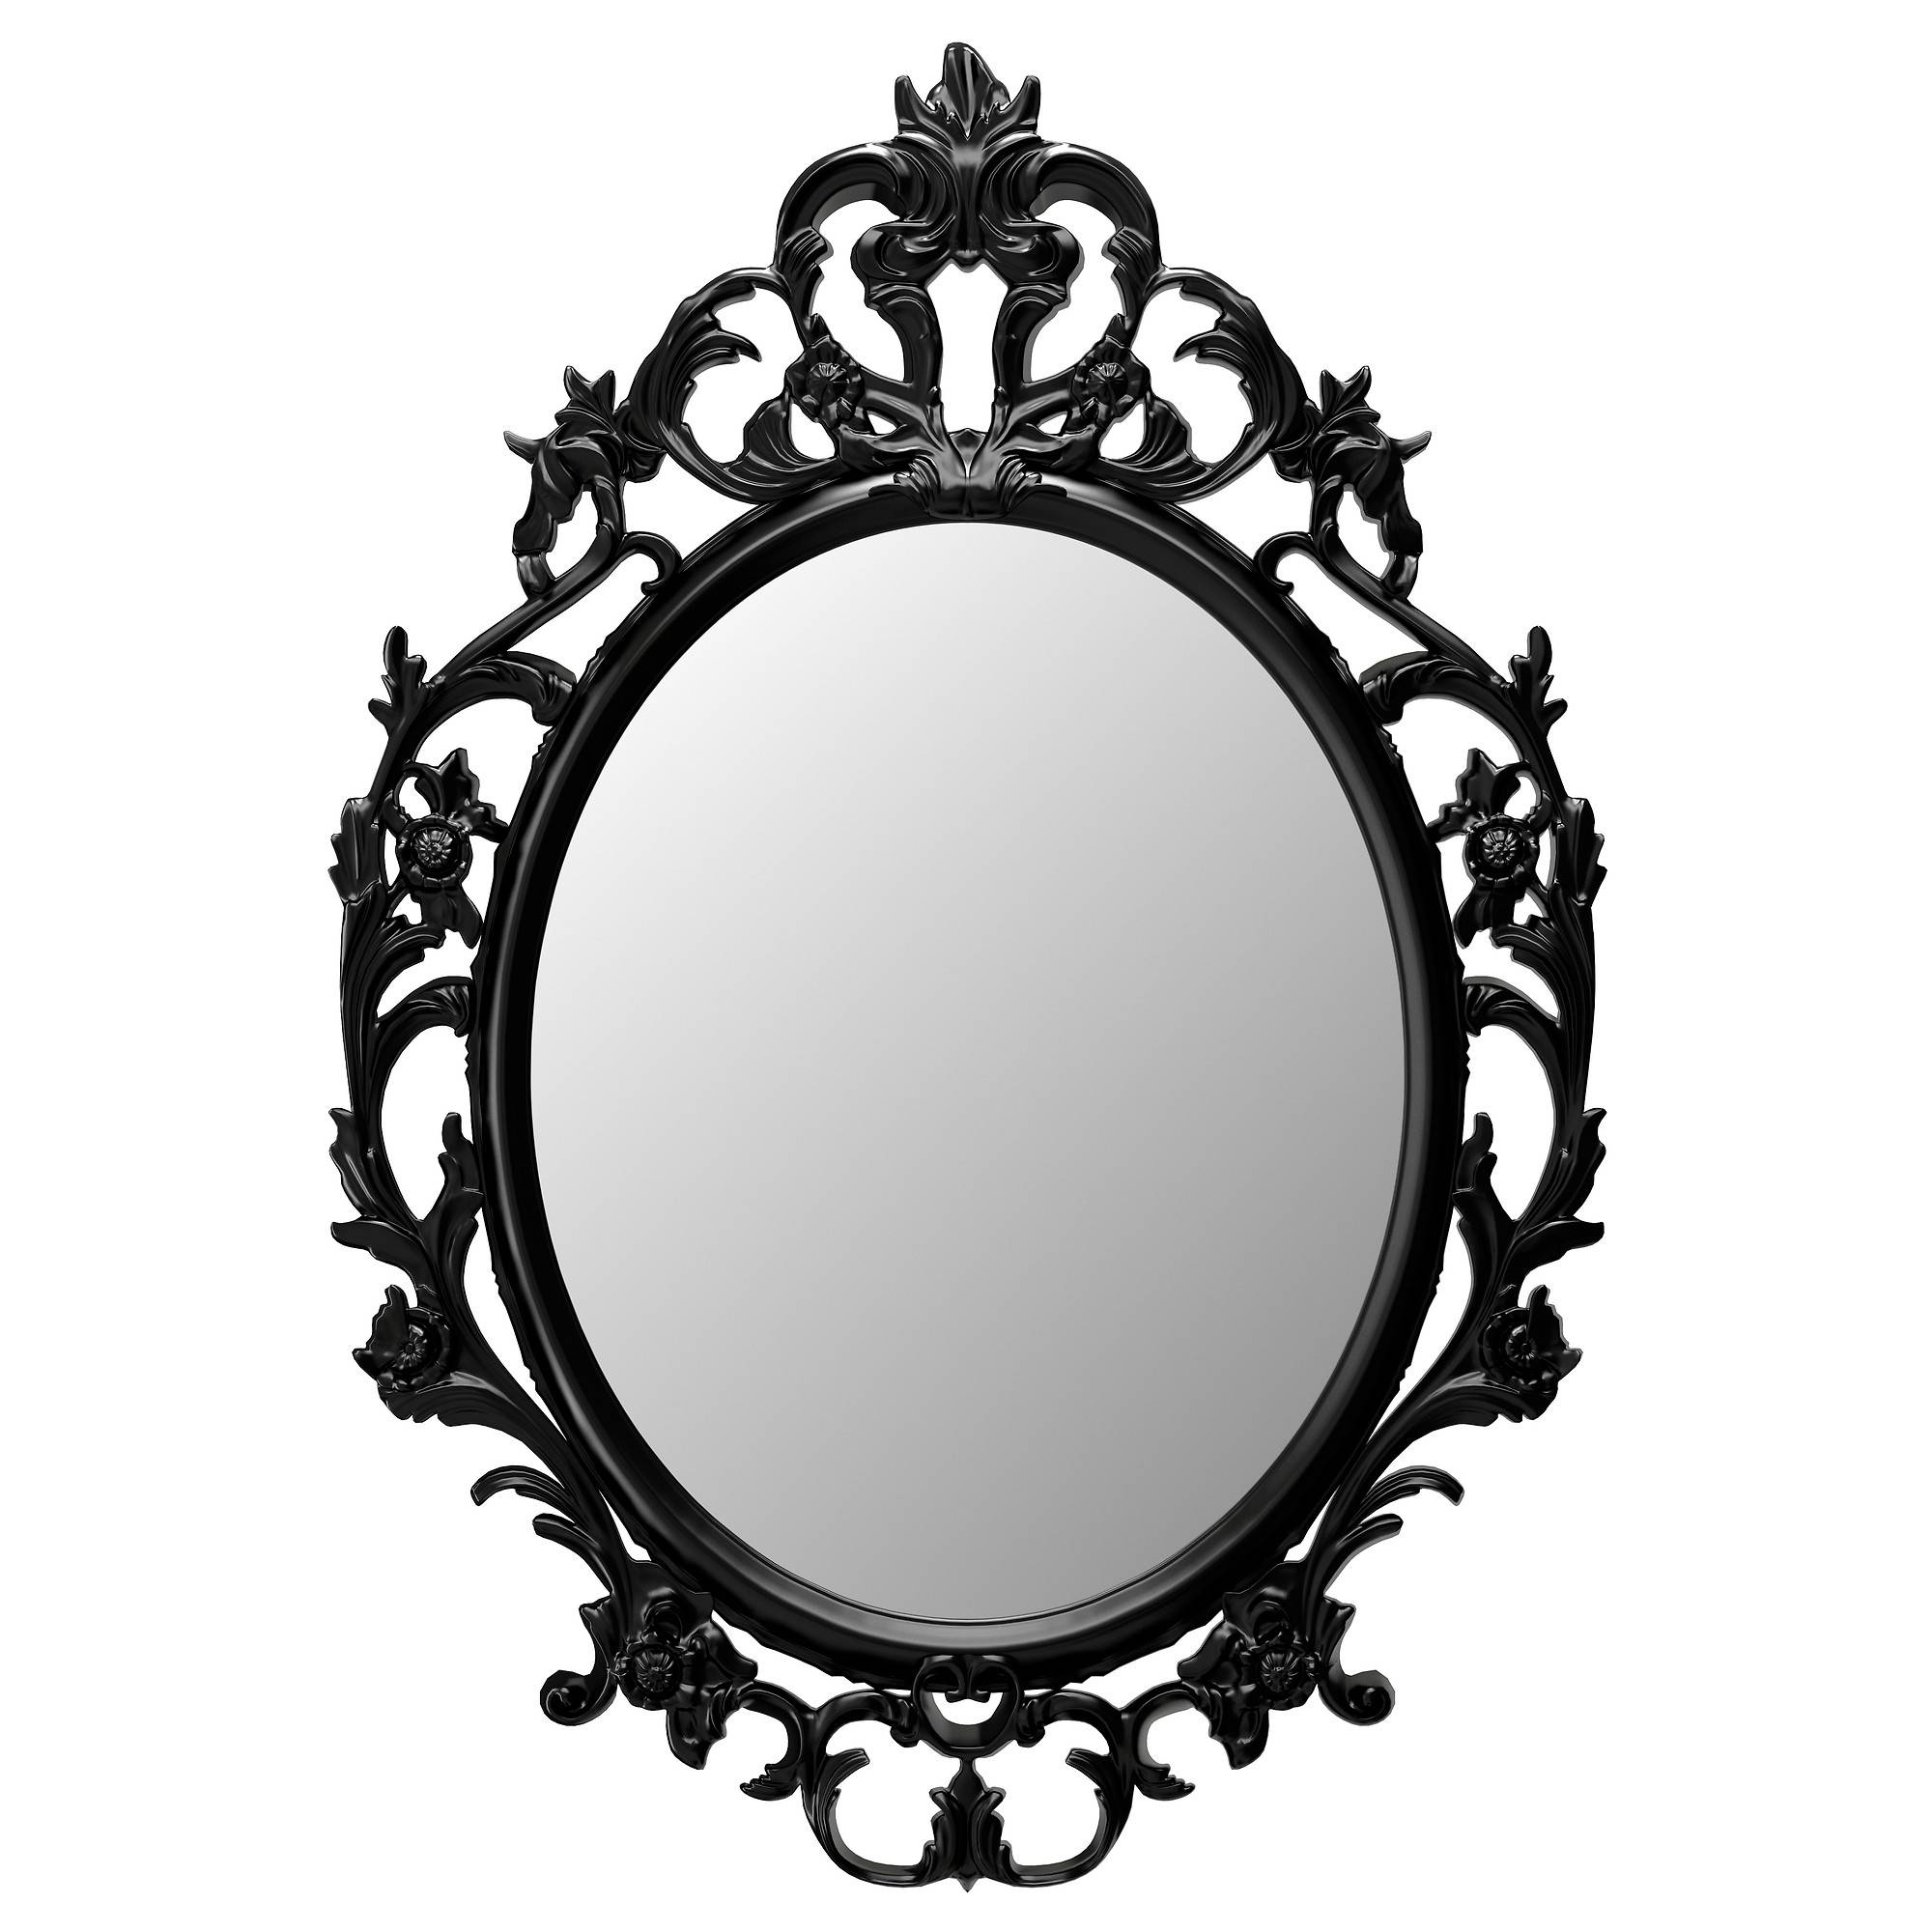 Wall Mirrors - Ikea with regard to Cheap Ornate Mirrors (Image 15 of 15)